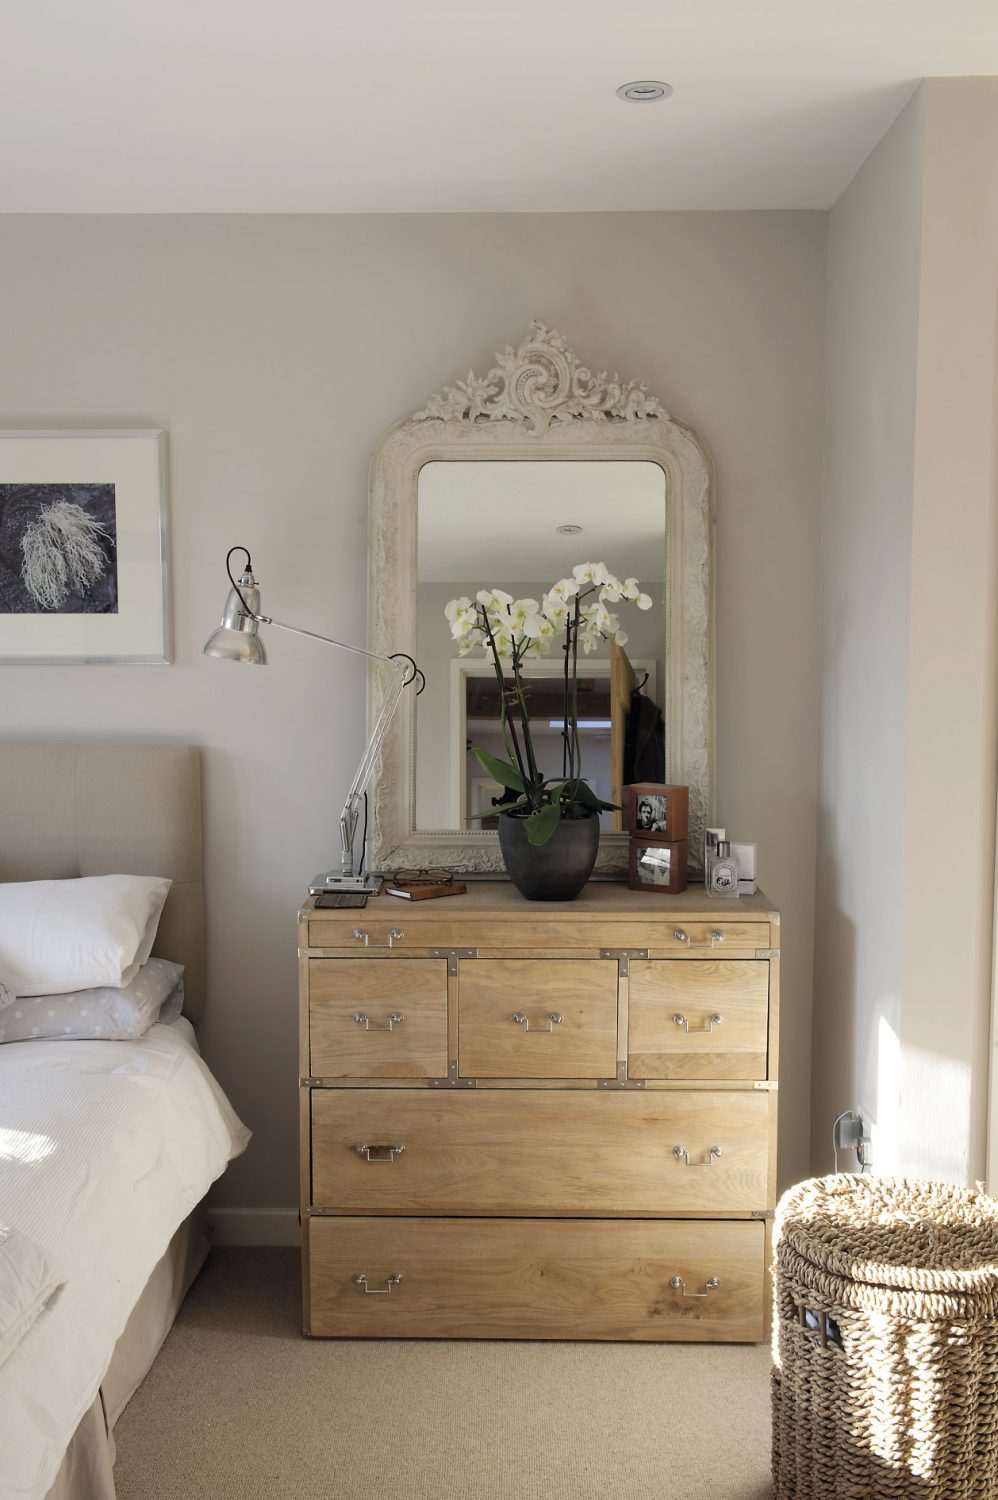 On the wall is a large and superb 1860's French mirror